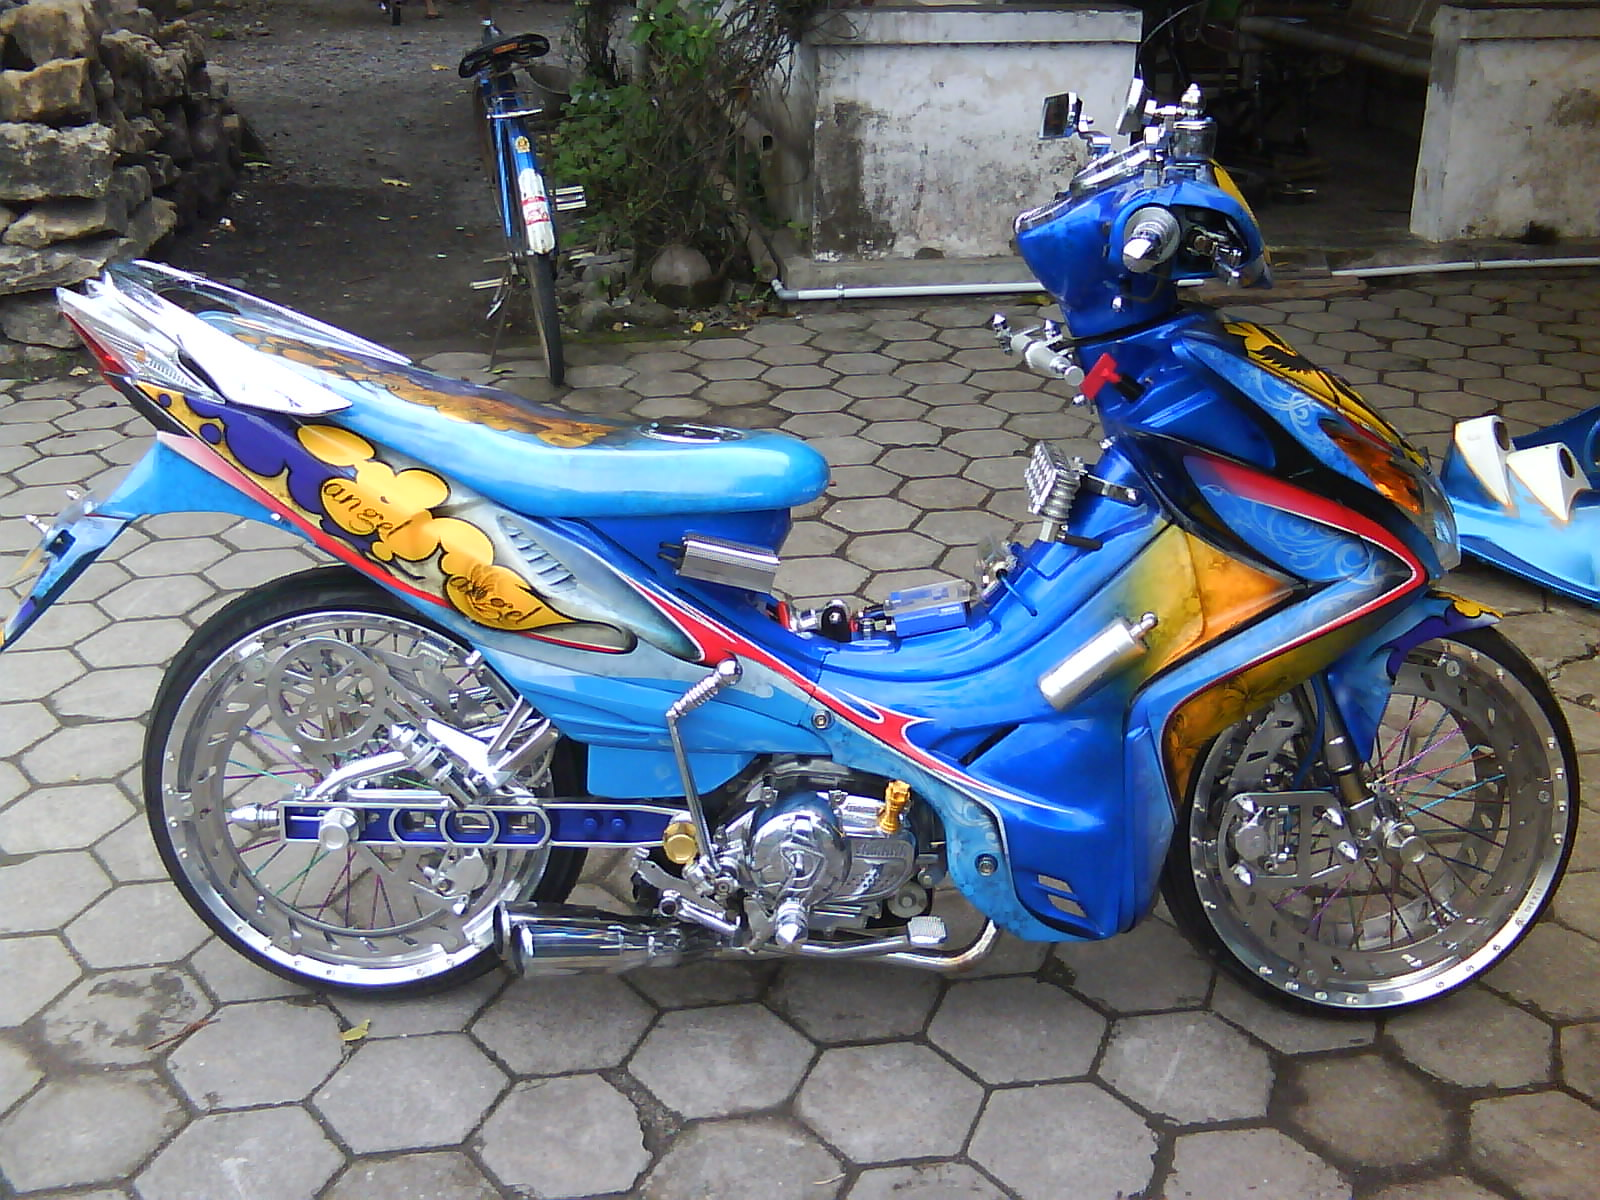 Jupiter Z Modif Transferbody 9in1 title=